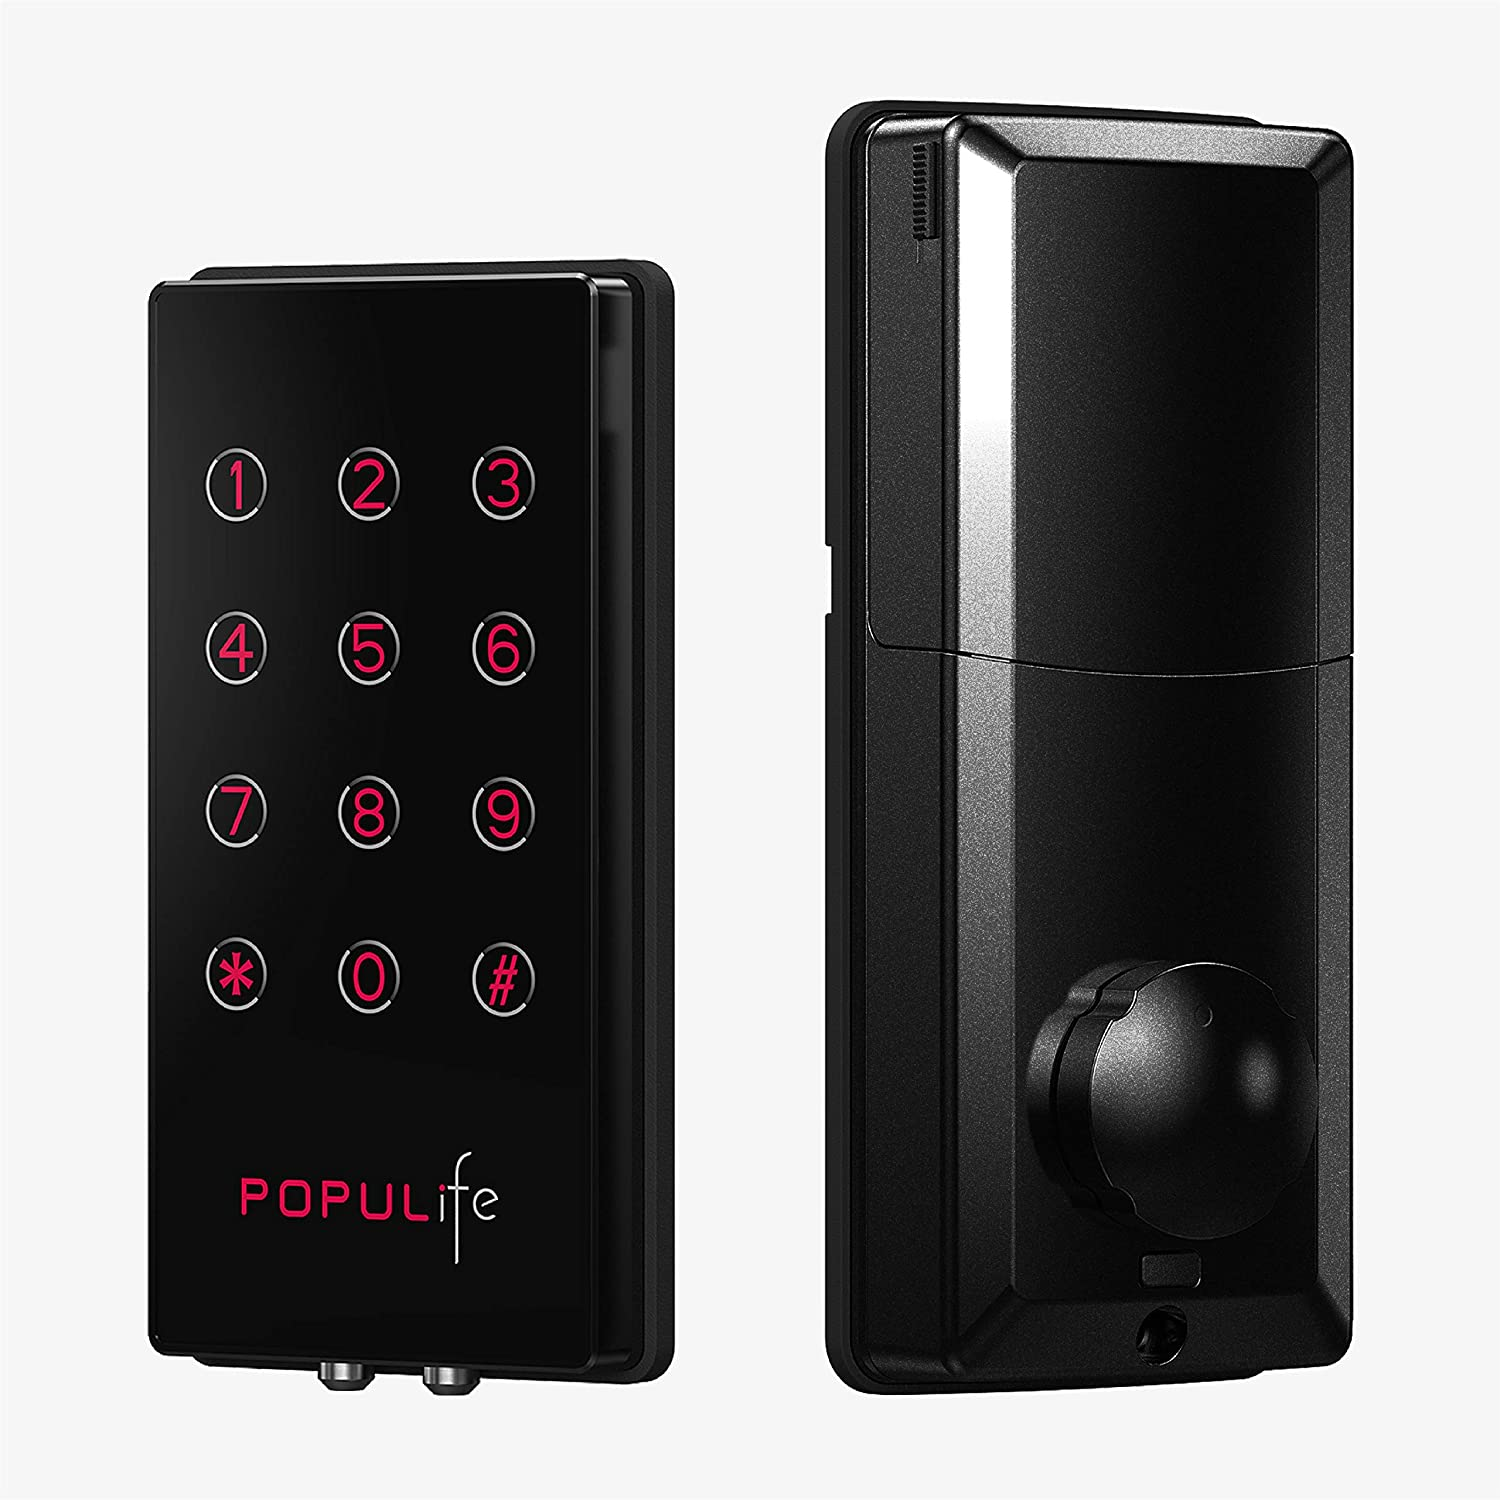 PopuLife Smart Keyless Entry Deadbolt Electronic Door Locks, Work with Bluetooth Keys, PIN Code, Remote Control with Gateway , Perfect for Home/Business/Property/Hotel, Black